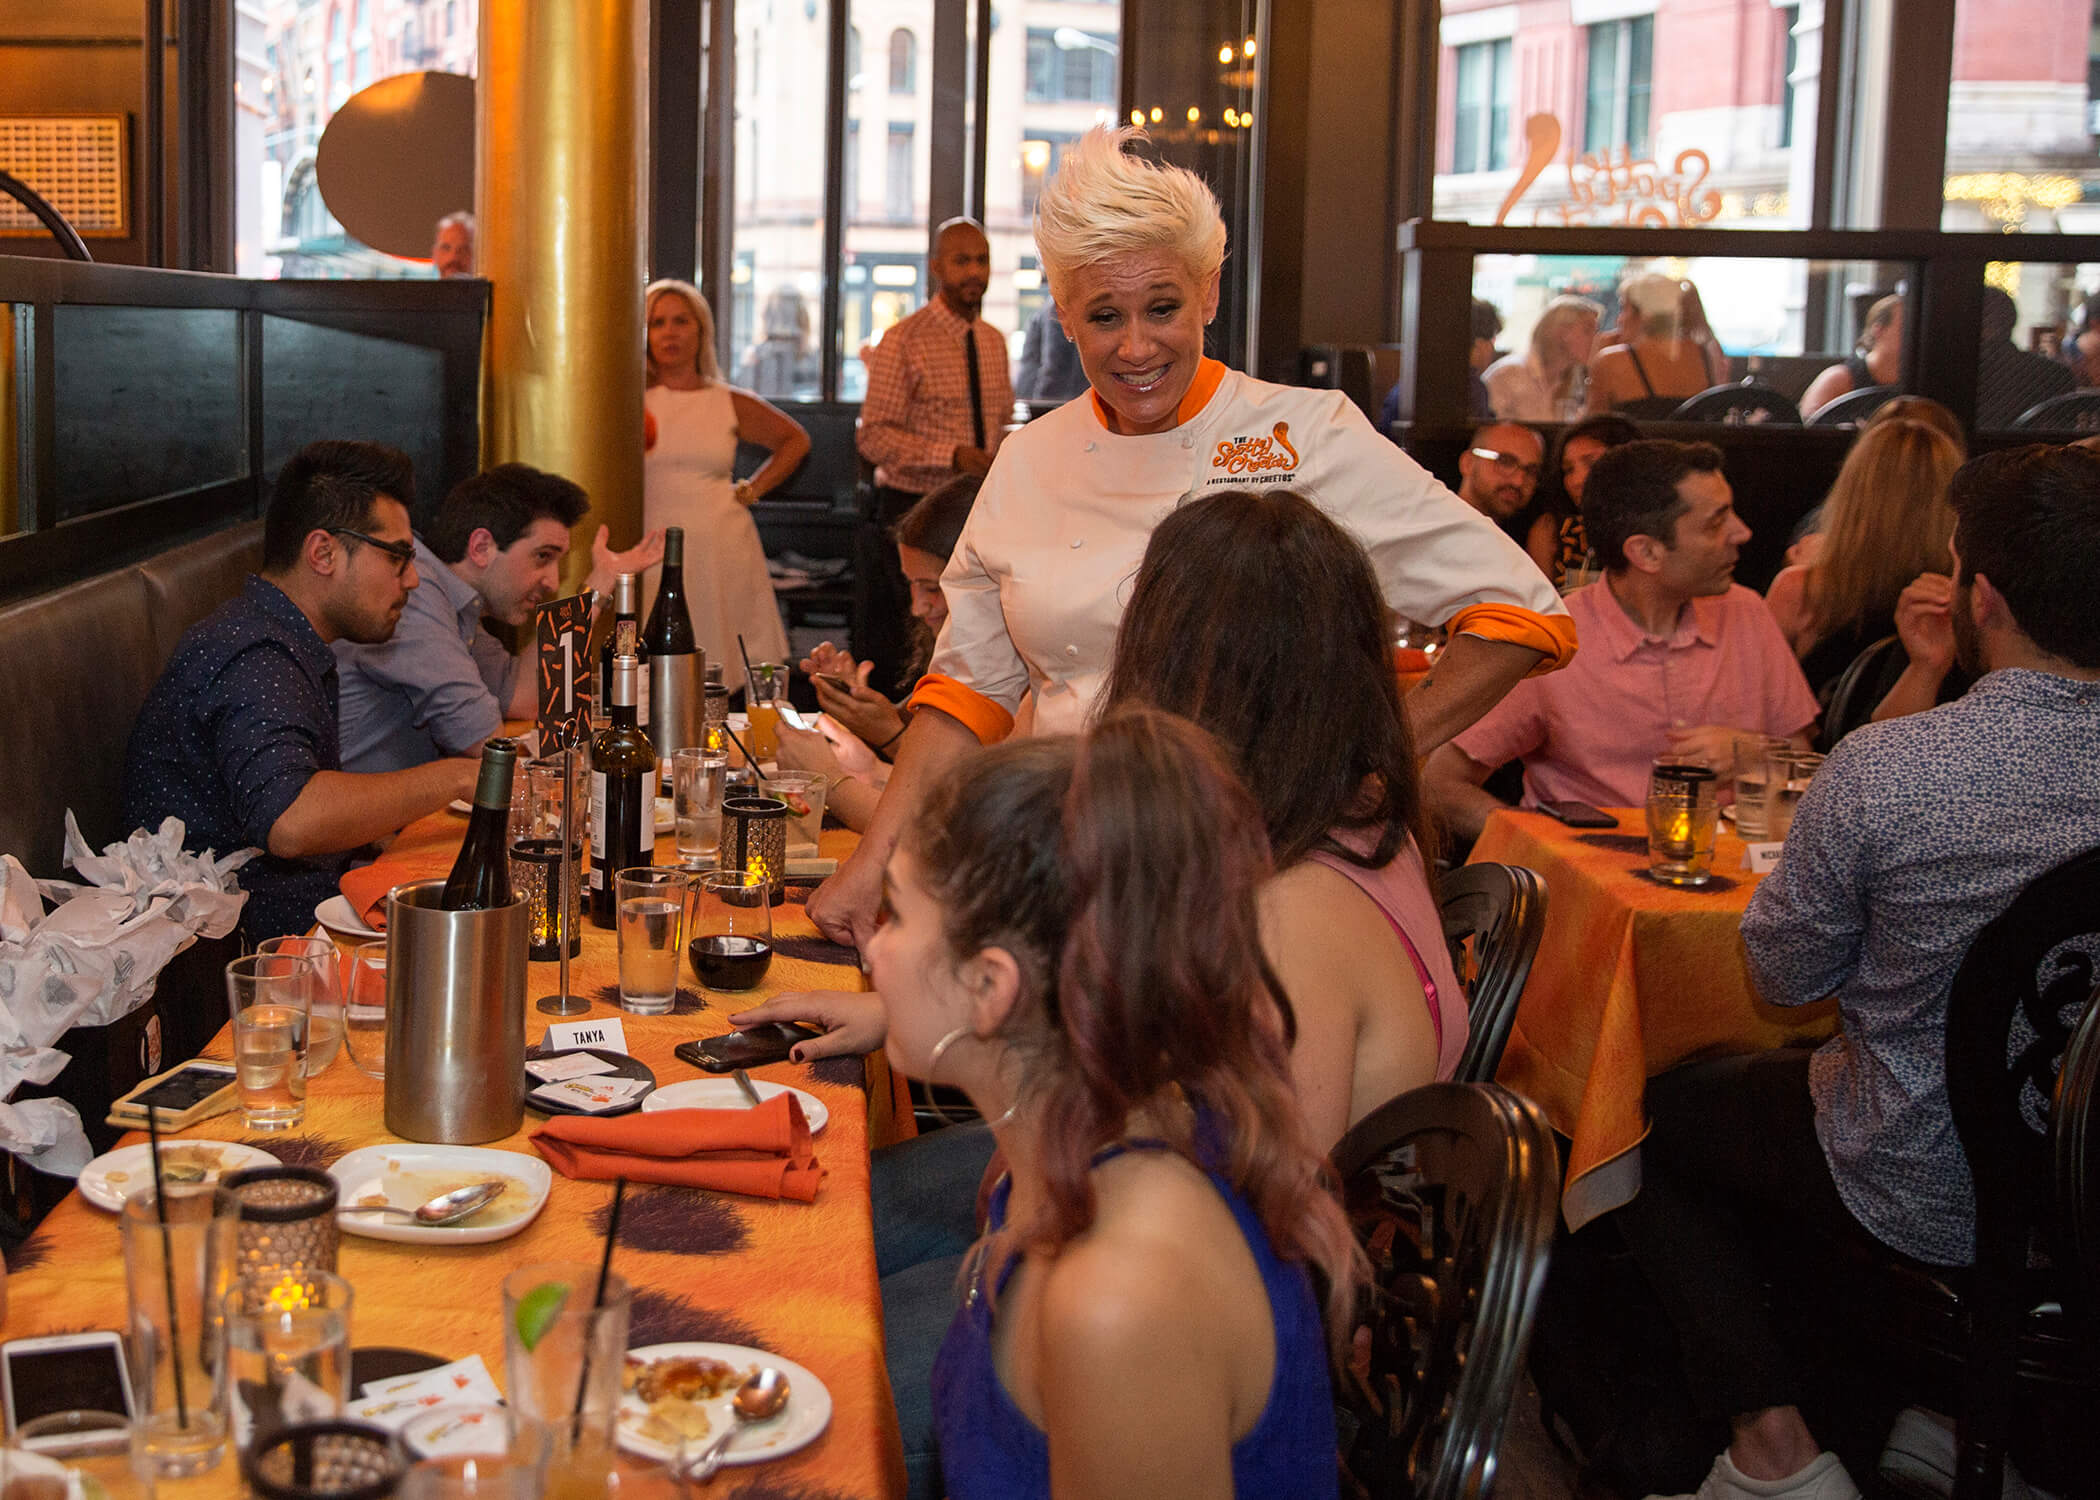 Celebrity chef Anne Burrell greeted guests at The Spotted Cheetah: A Restaurant by Cheetos.